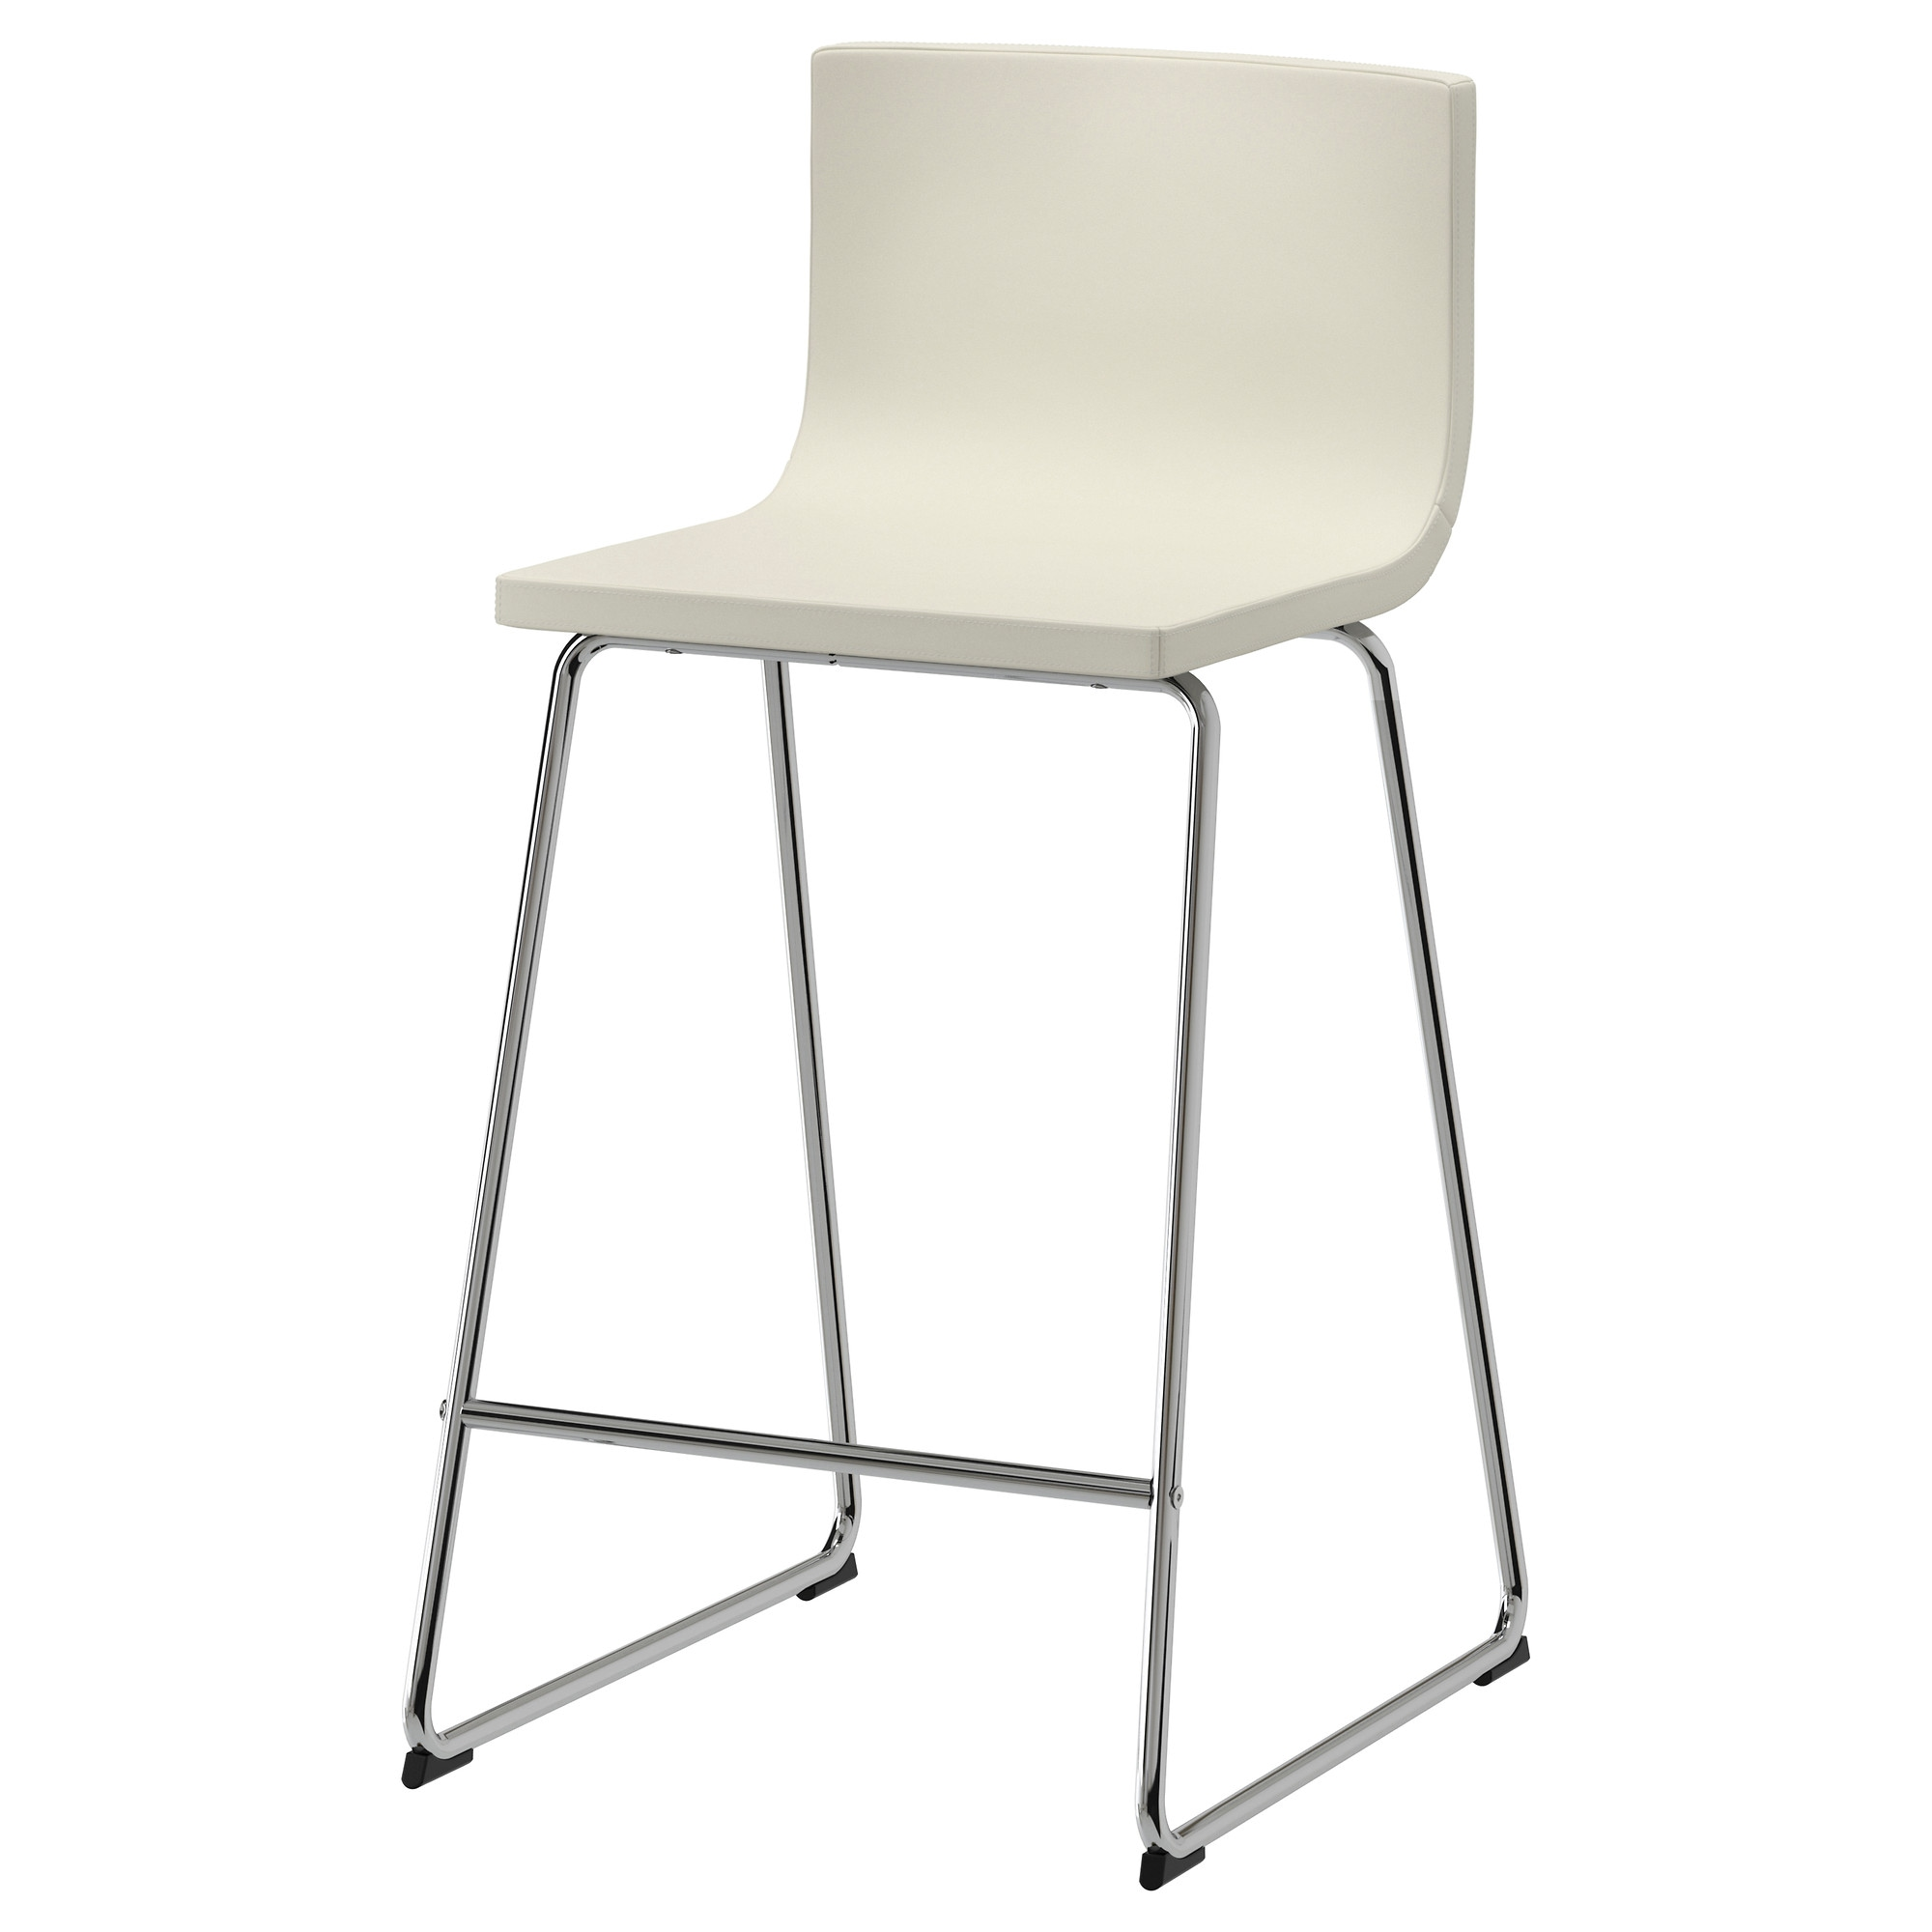 BERNHARD Bar stool with backrest IKEA